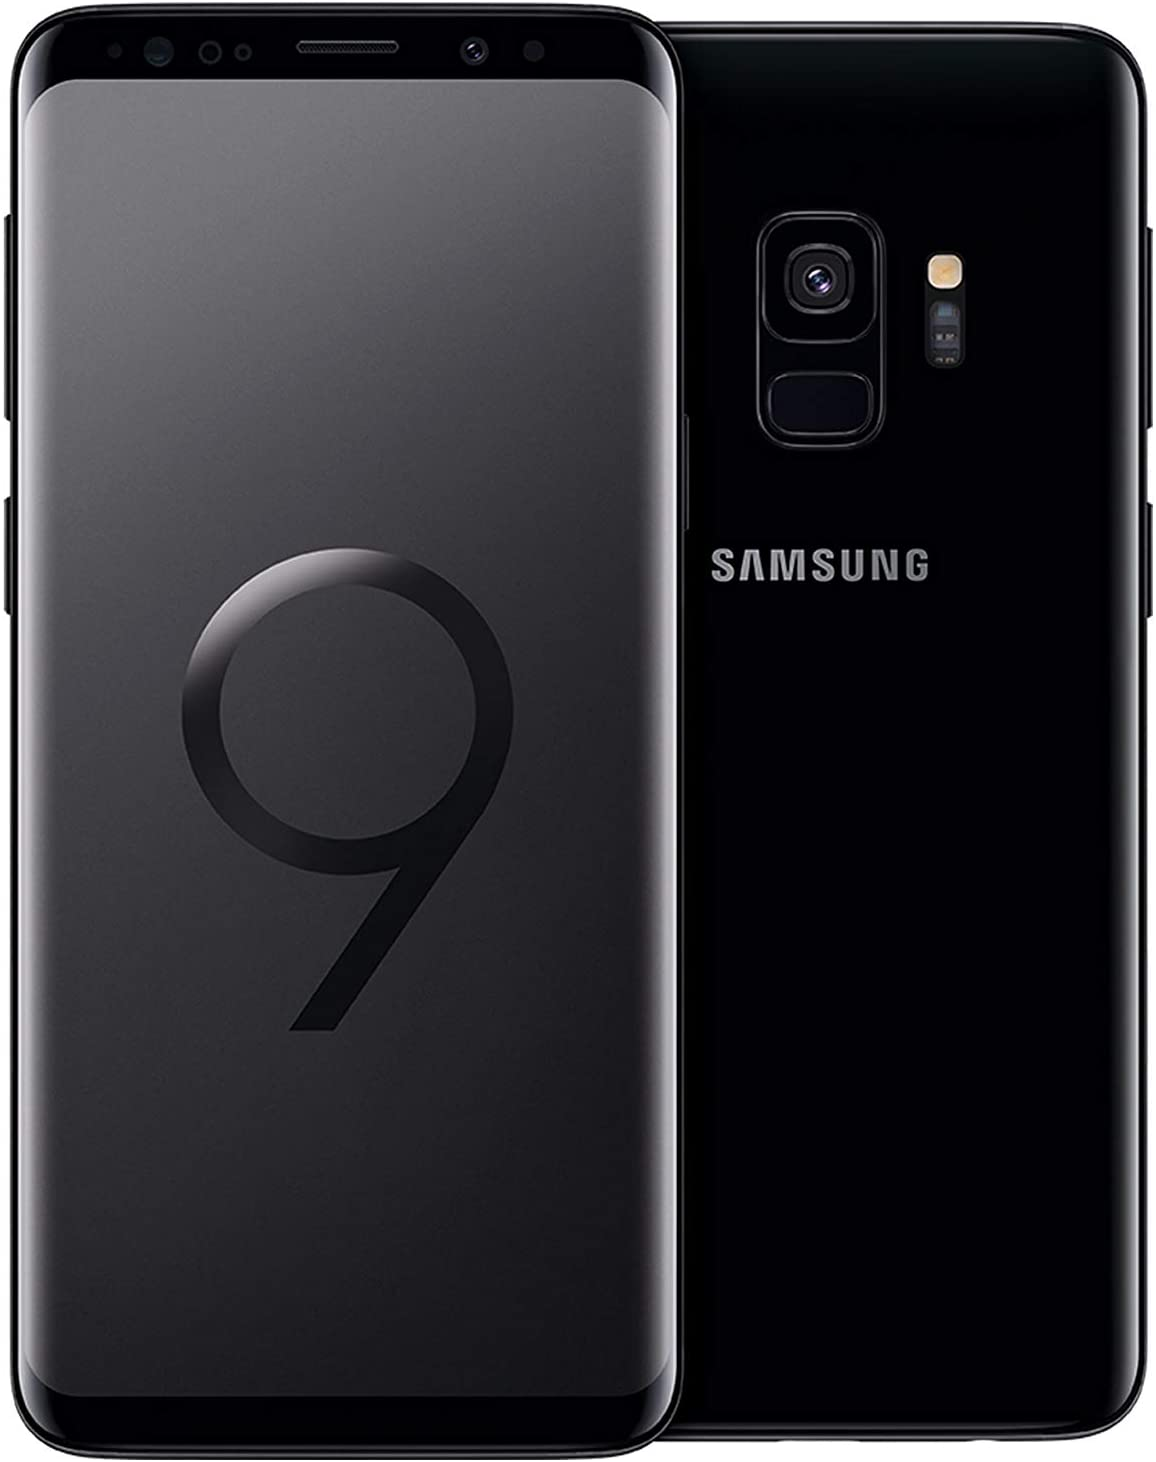 Smartphone Samsung Galaxy S9 - The ultimate 2020 Review - Best price in UAE - Darahim.net